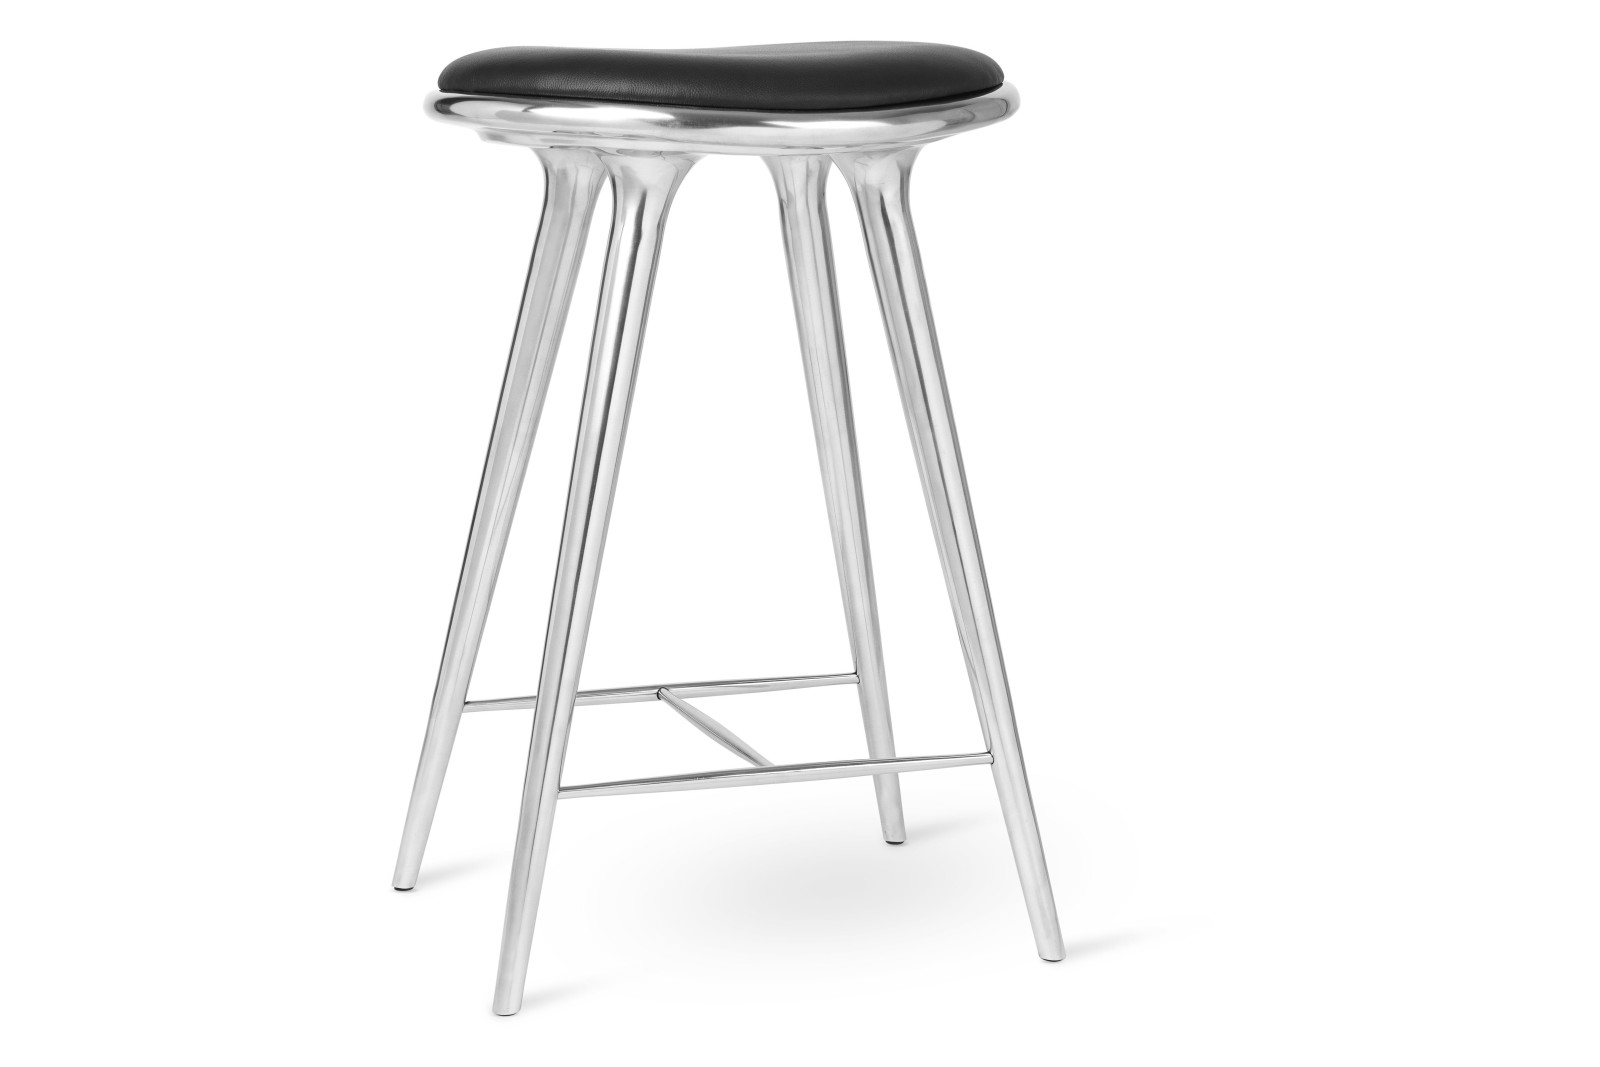 High Stool, Black Leather Seat Partly Recycled Aluminium, 69cm